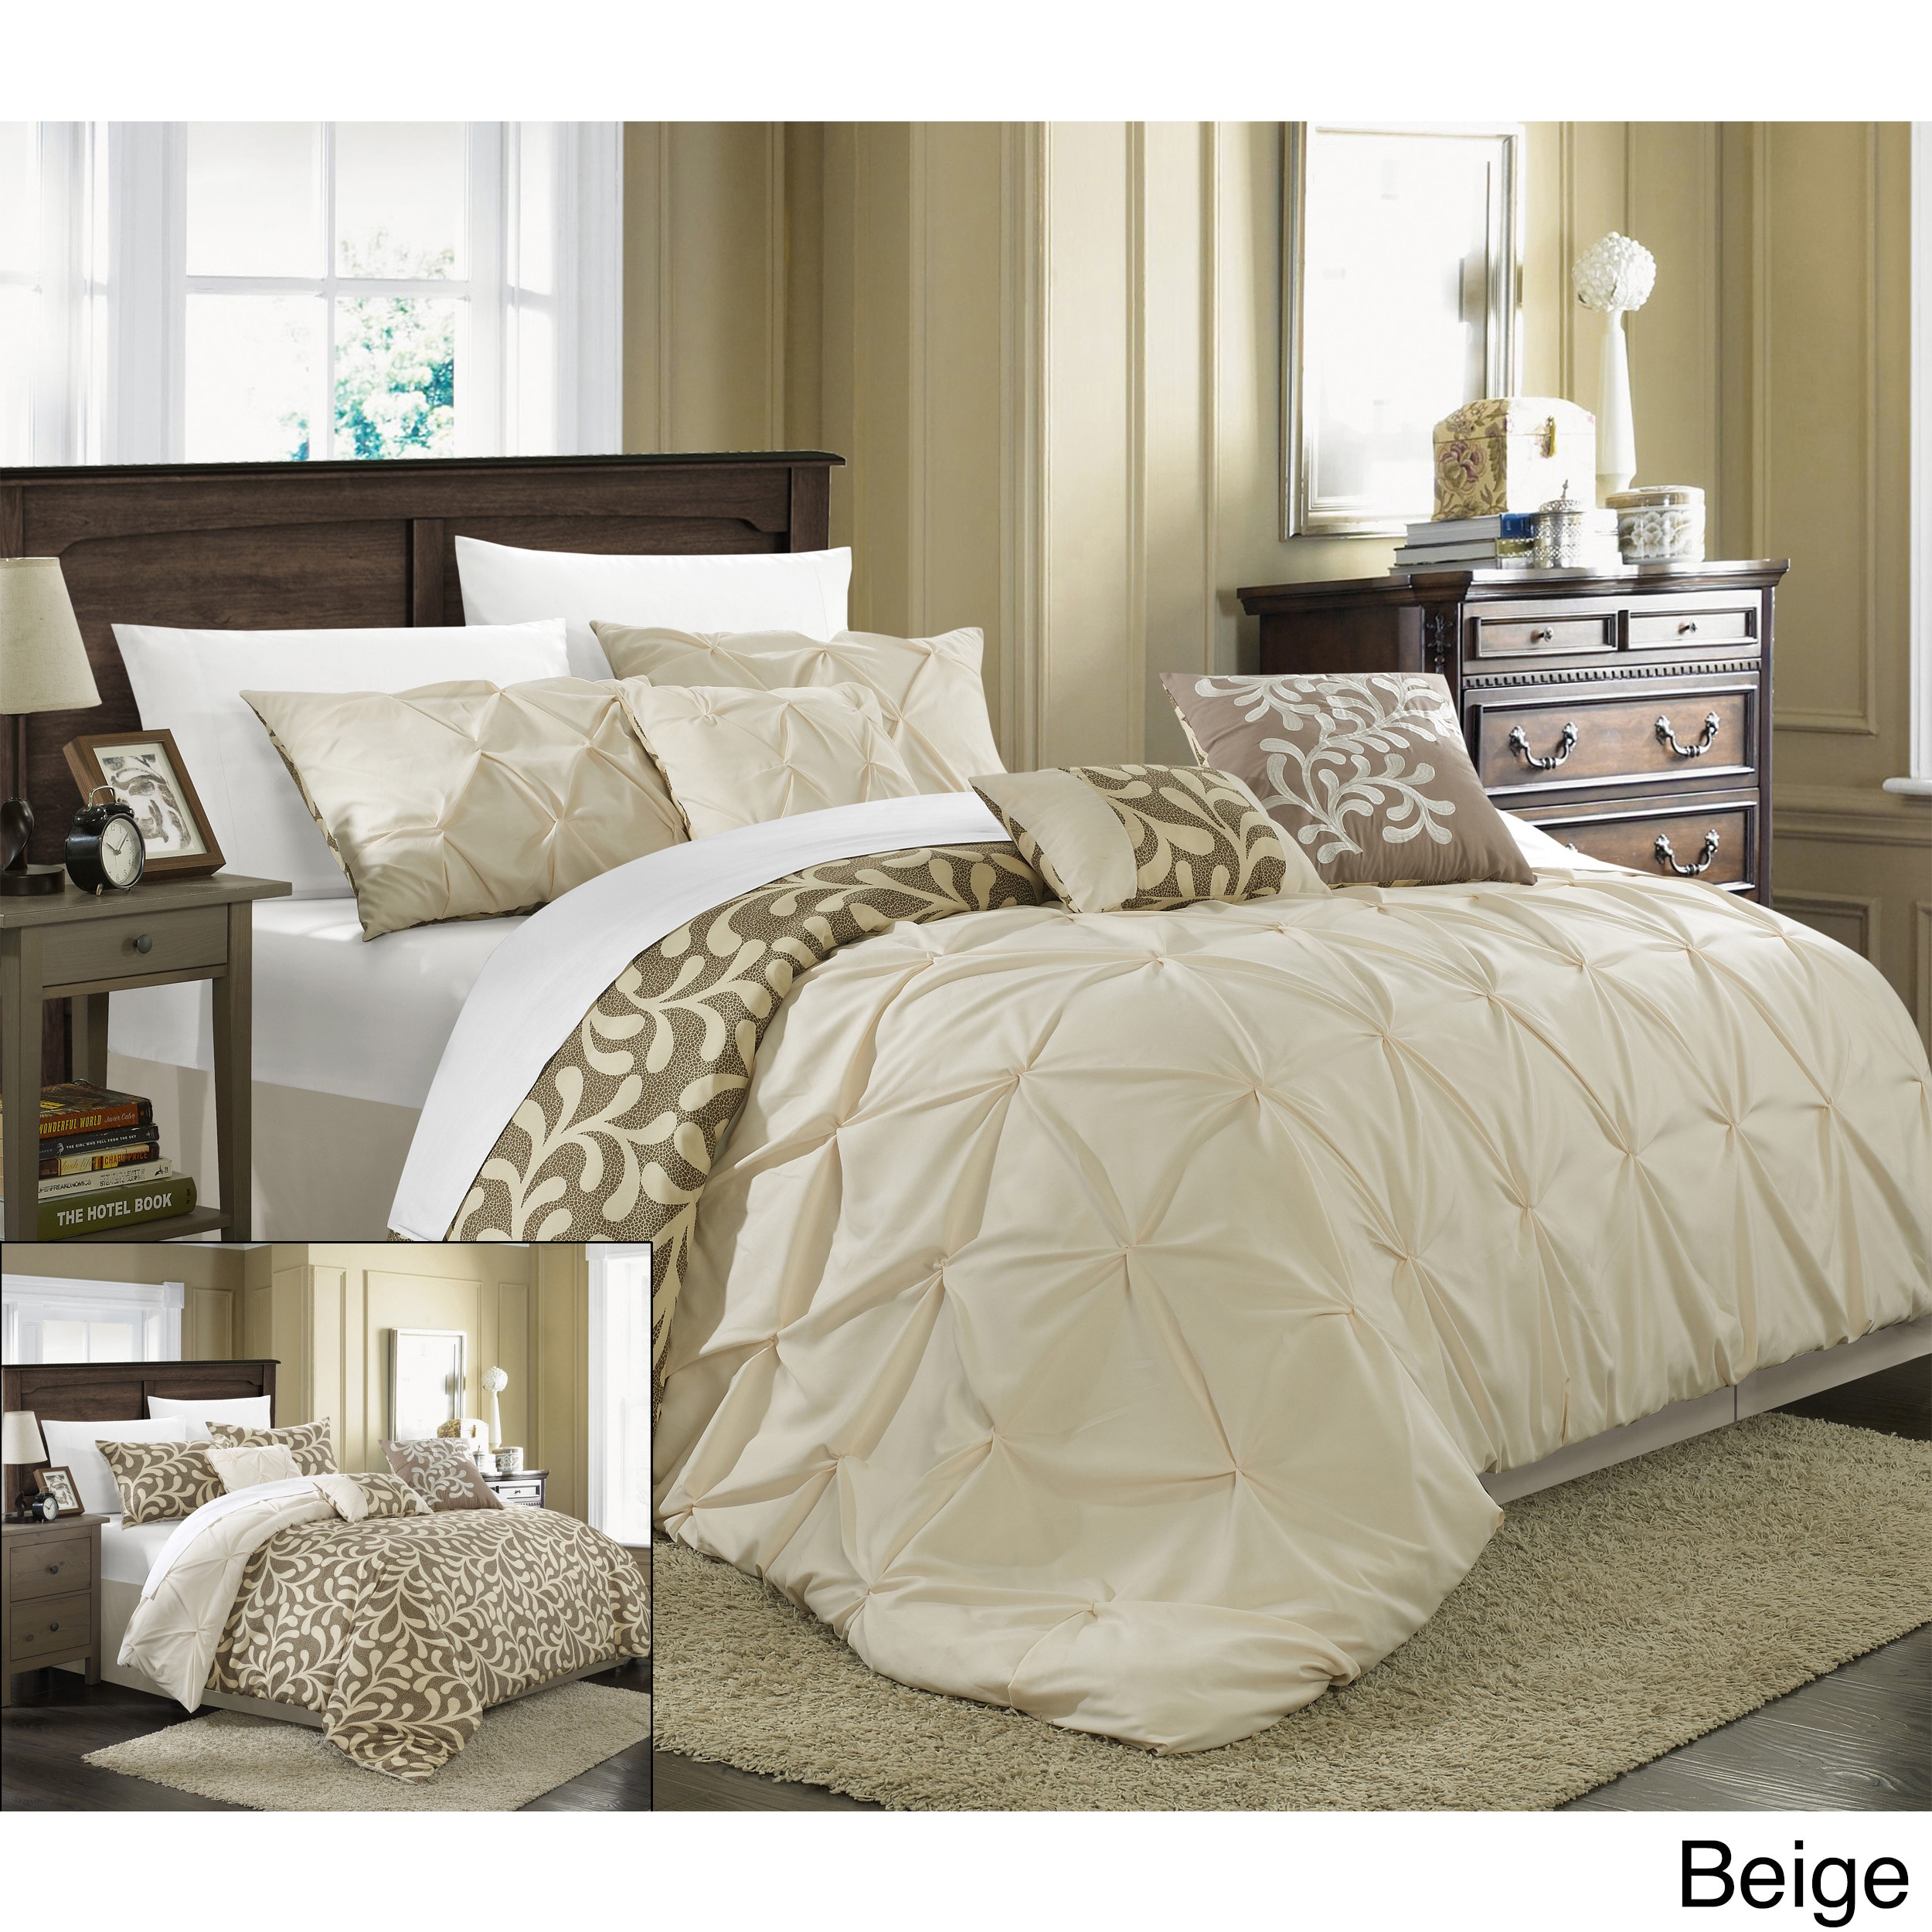 bedding comforter nc collection hotel down coast image sets blog pacific prod